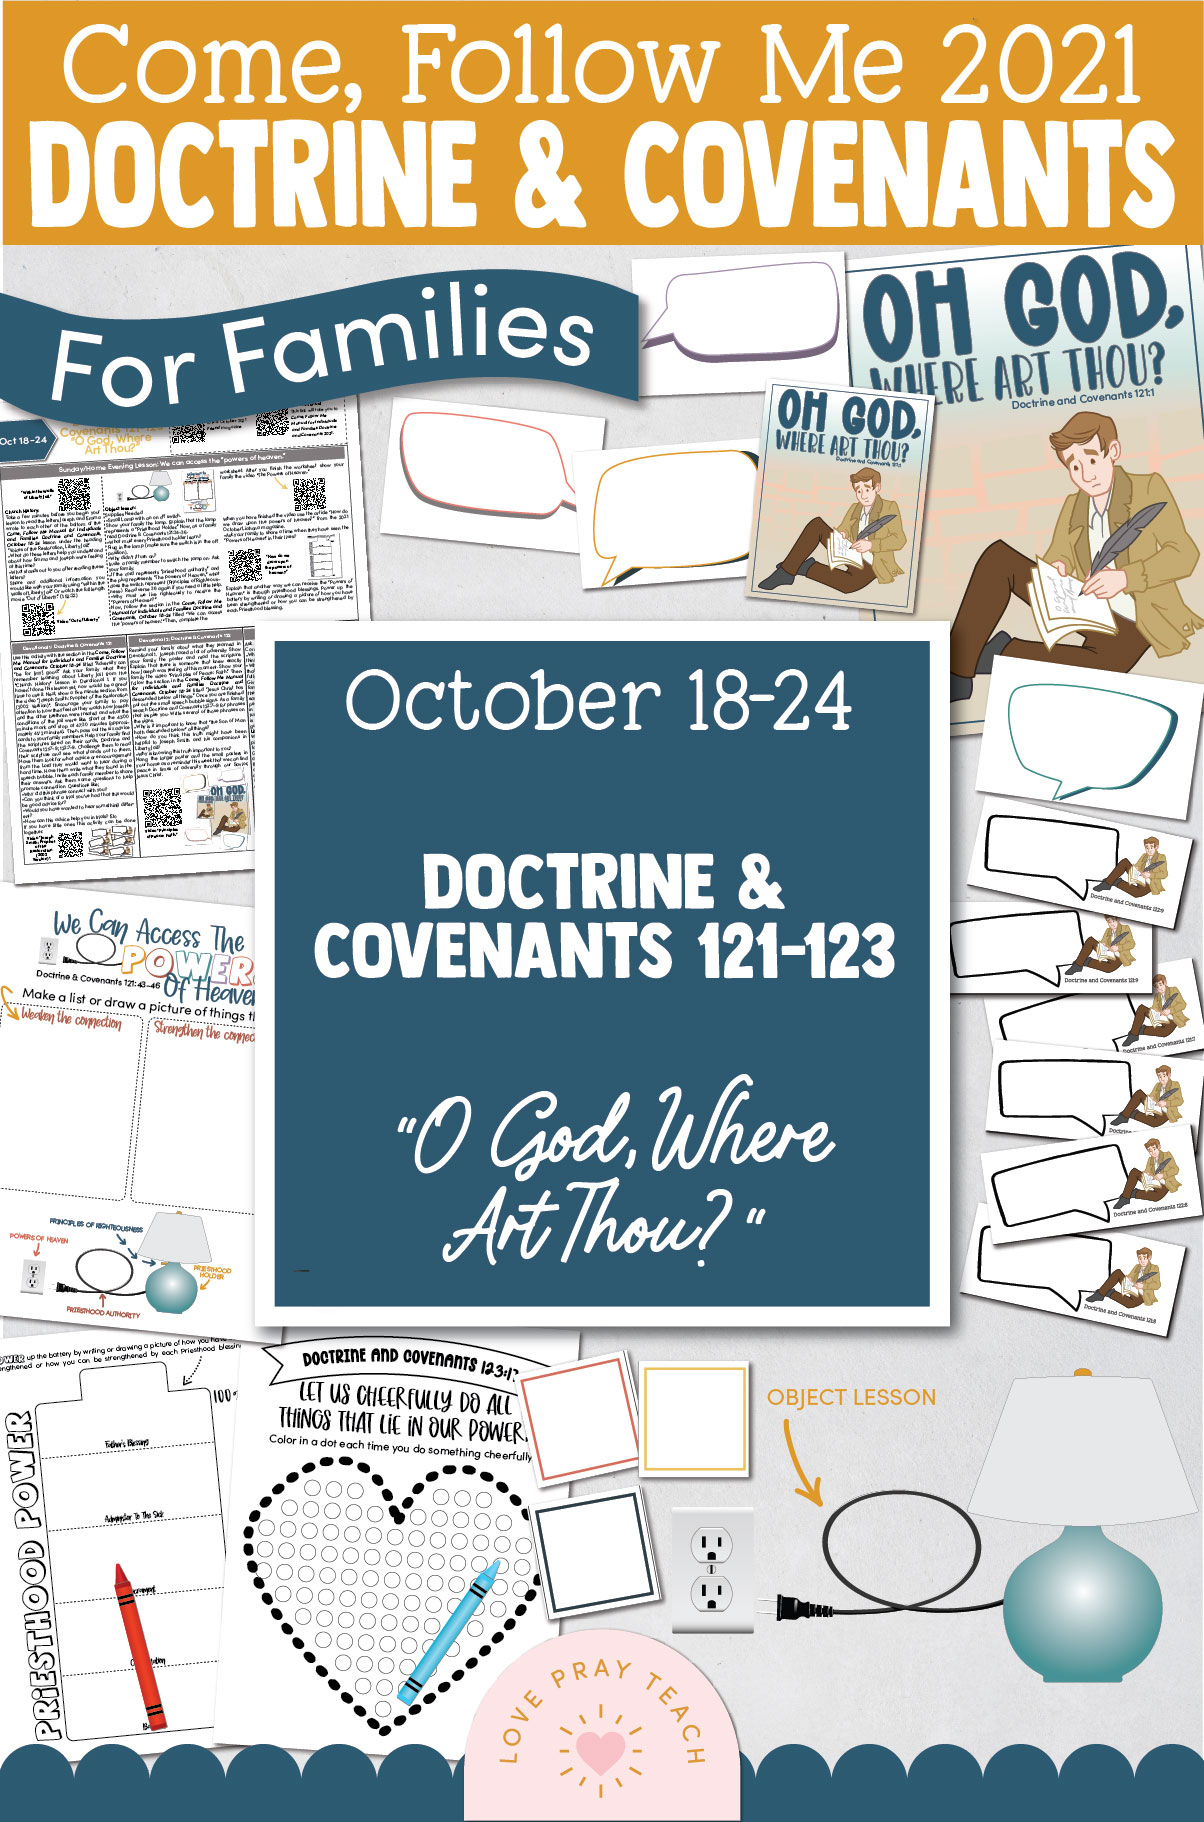 """Come, Follow Me—For Individuals and Families: Doctrine And Covenants 2021, October Week 4 Doctrine and Covenants 121-123:-October 18-24, """"O God, Where Art Thou?"""""""